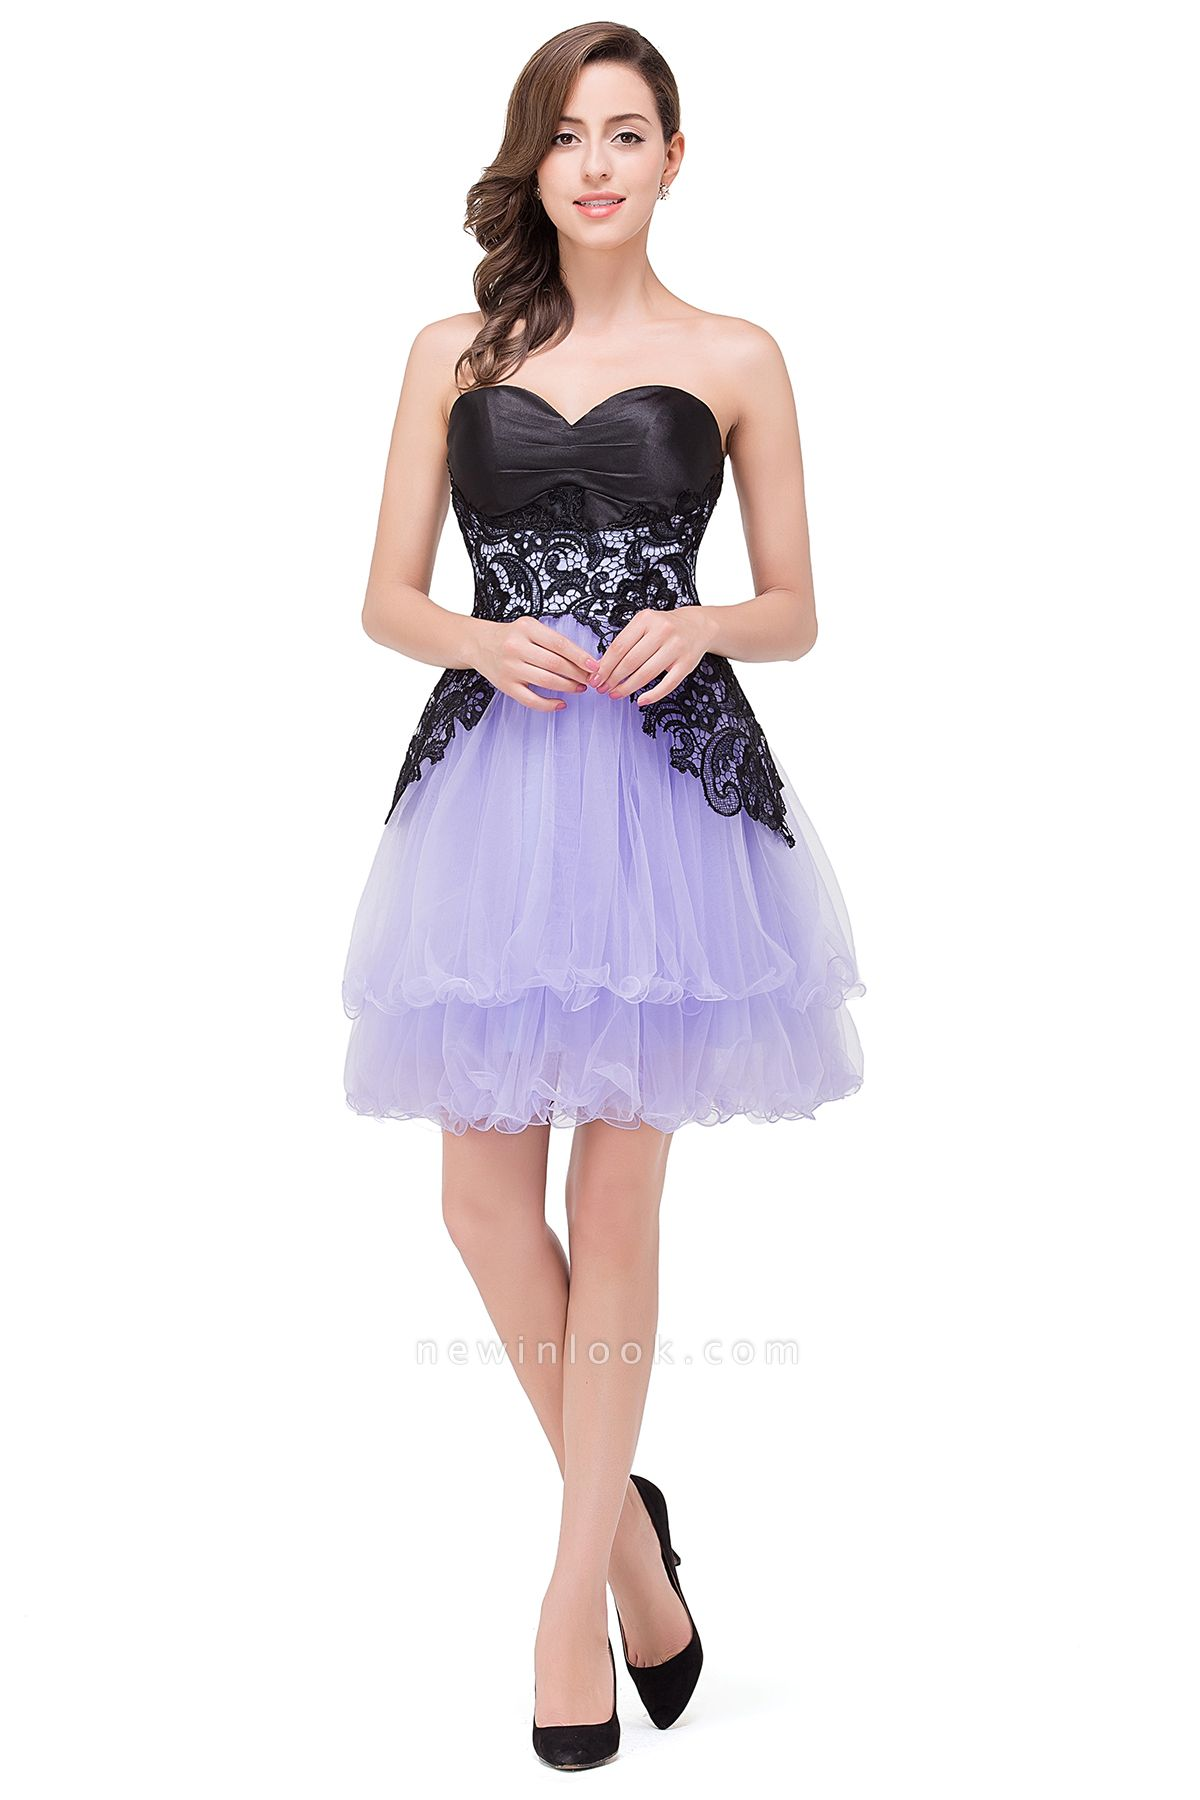 EVALYN | Quinceanera Sweetheart Short Dama Dresses with Bowknot-Sash